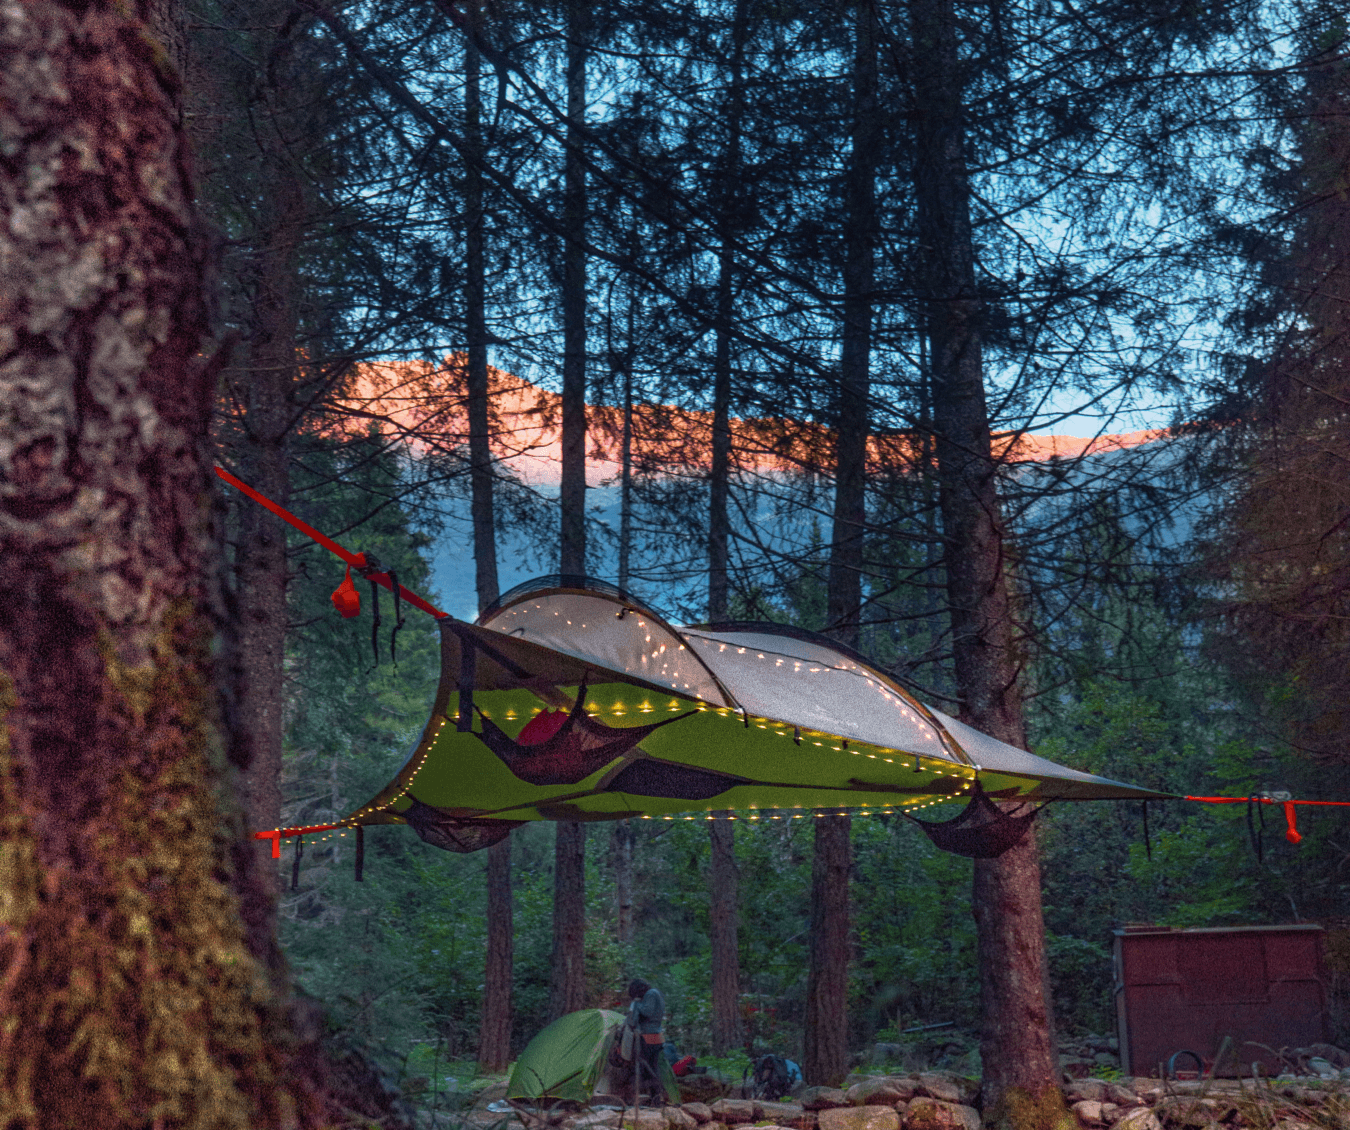 Tent in the trees